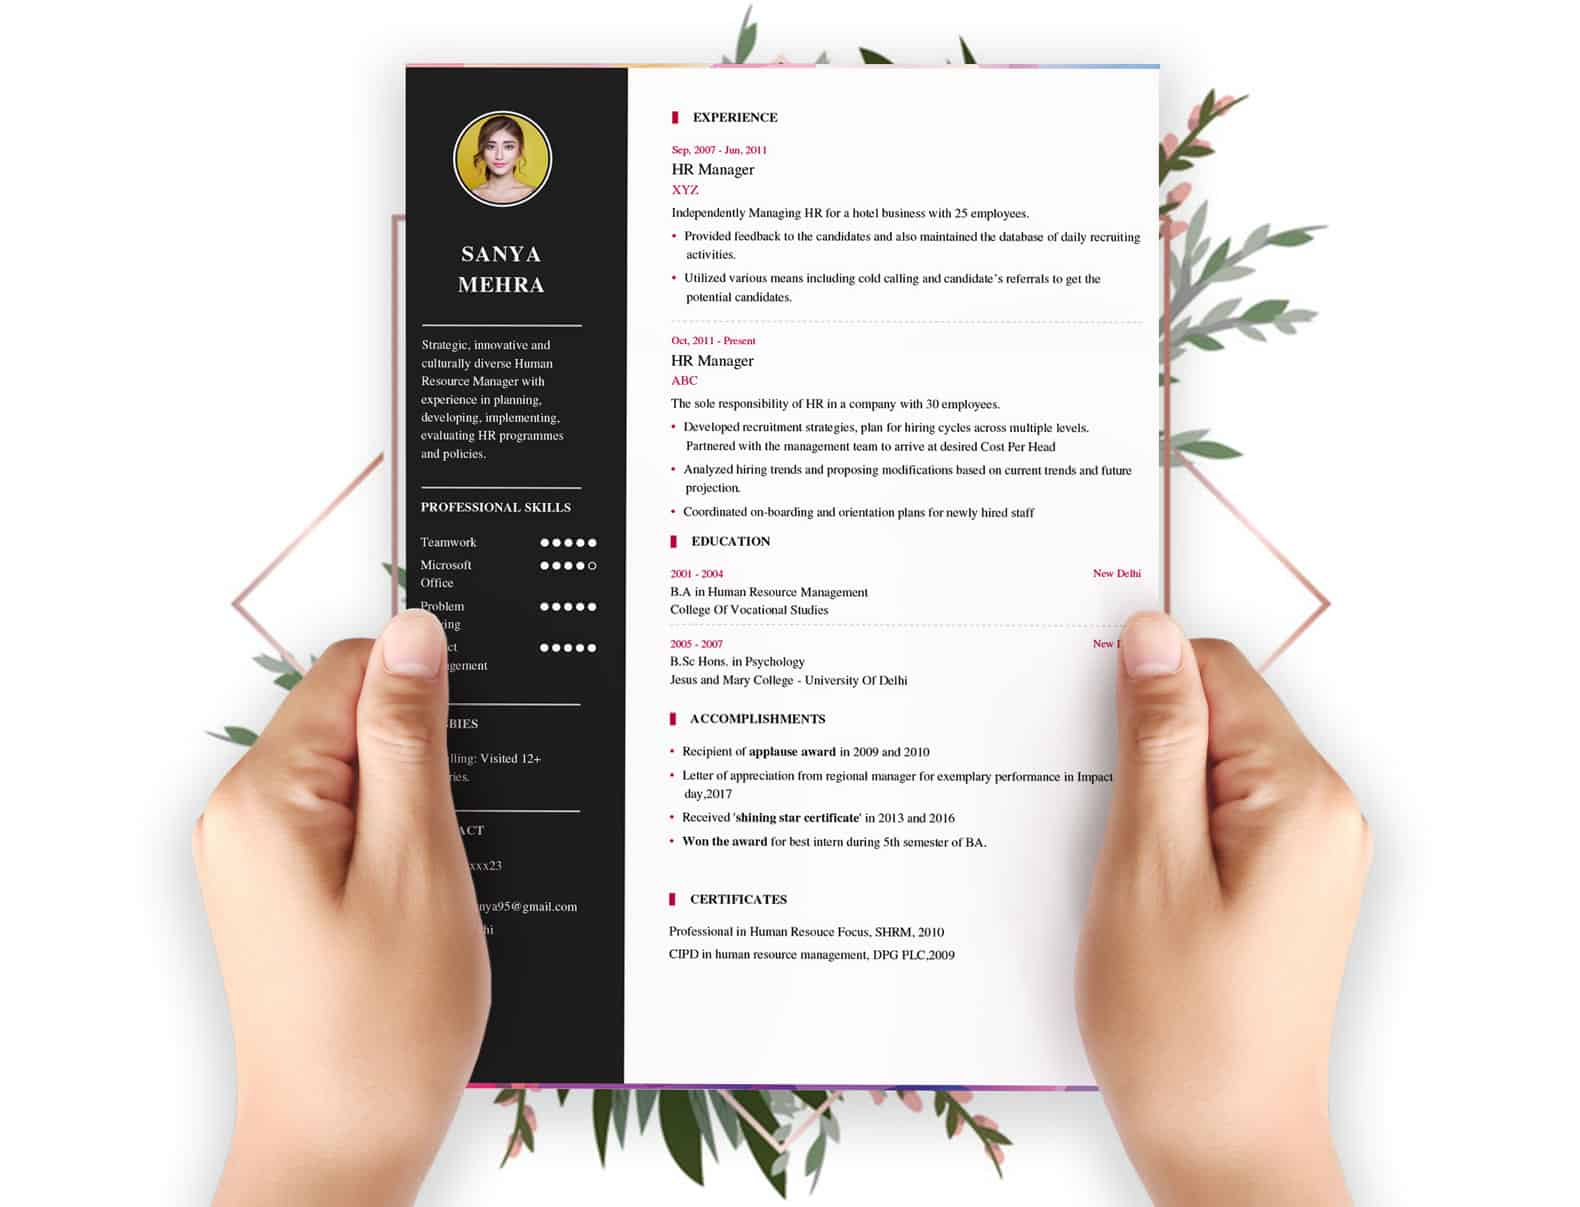 resume builder my format free and job board professional templates template assistant Resume Professional Resume Templates 2018 Free Download